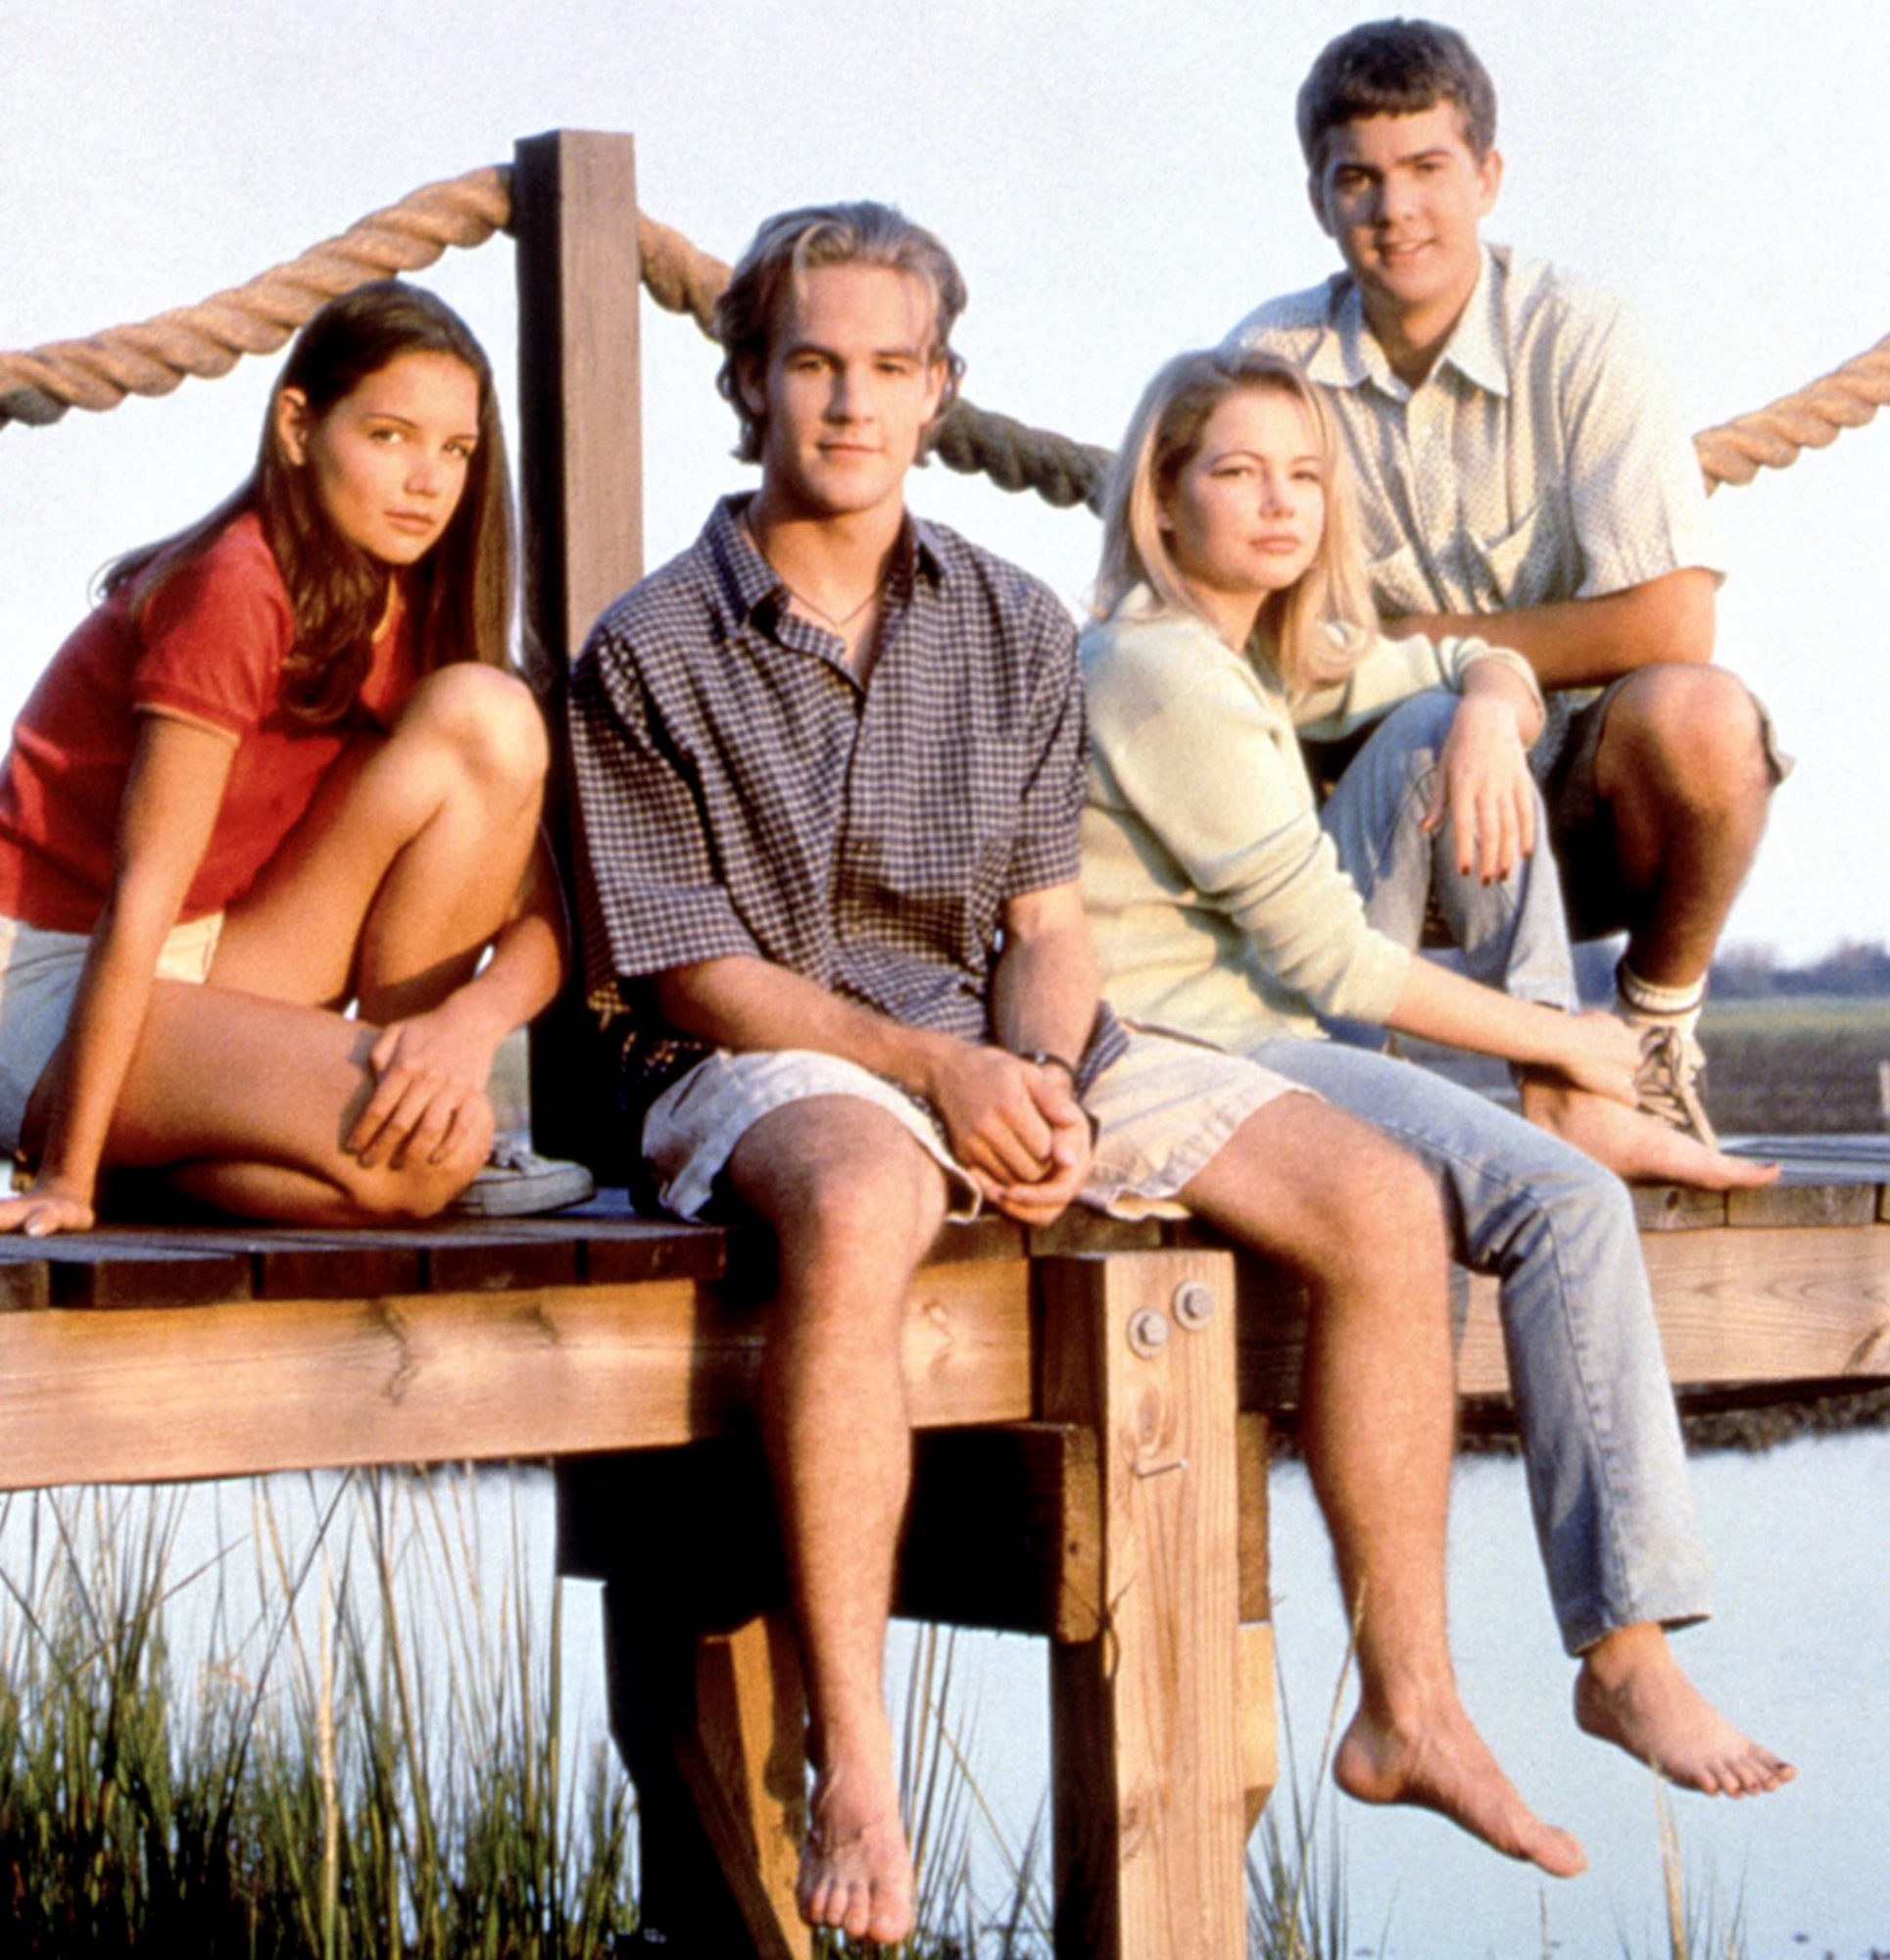 DAWSON'S CREEK, Katie Holmes, James Van Der Beek, Michelle Williams, Joshua Jackson, (Season 1), 199